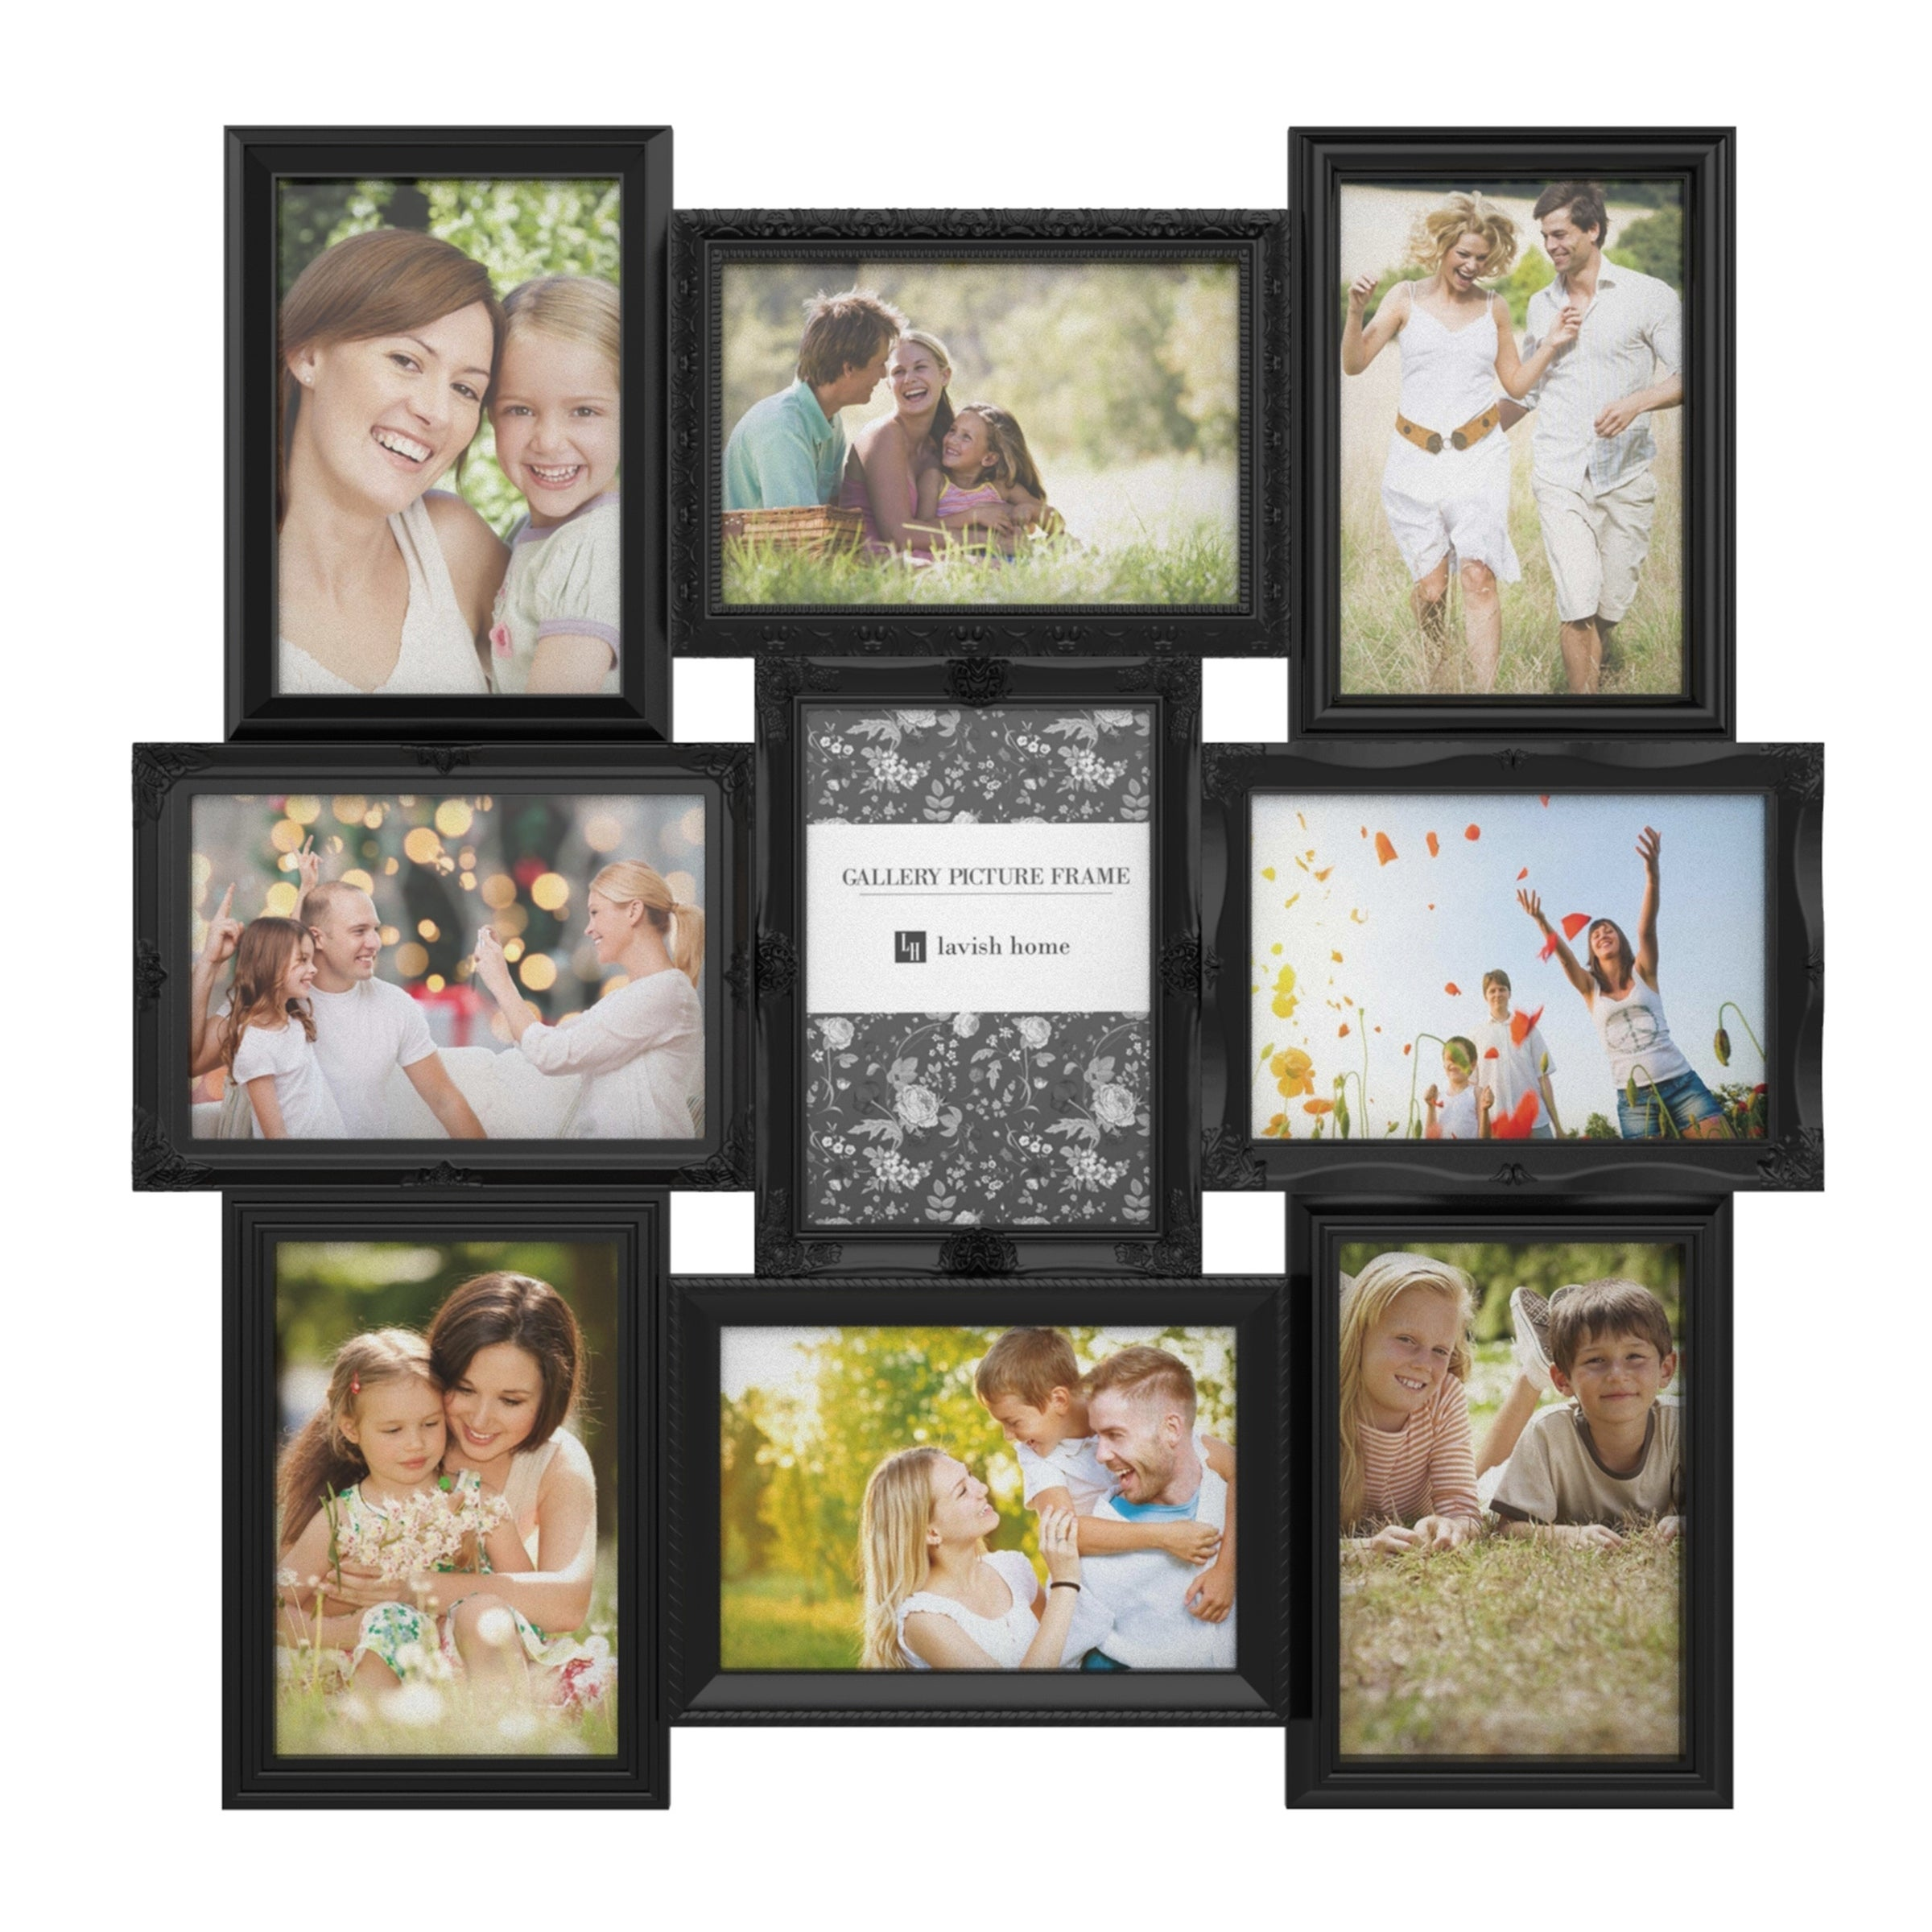 Wall Mounted Black Plastic Collage 6 Multi Photo Picture Frame Photograph 4x6